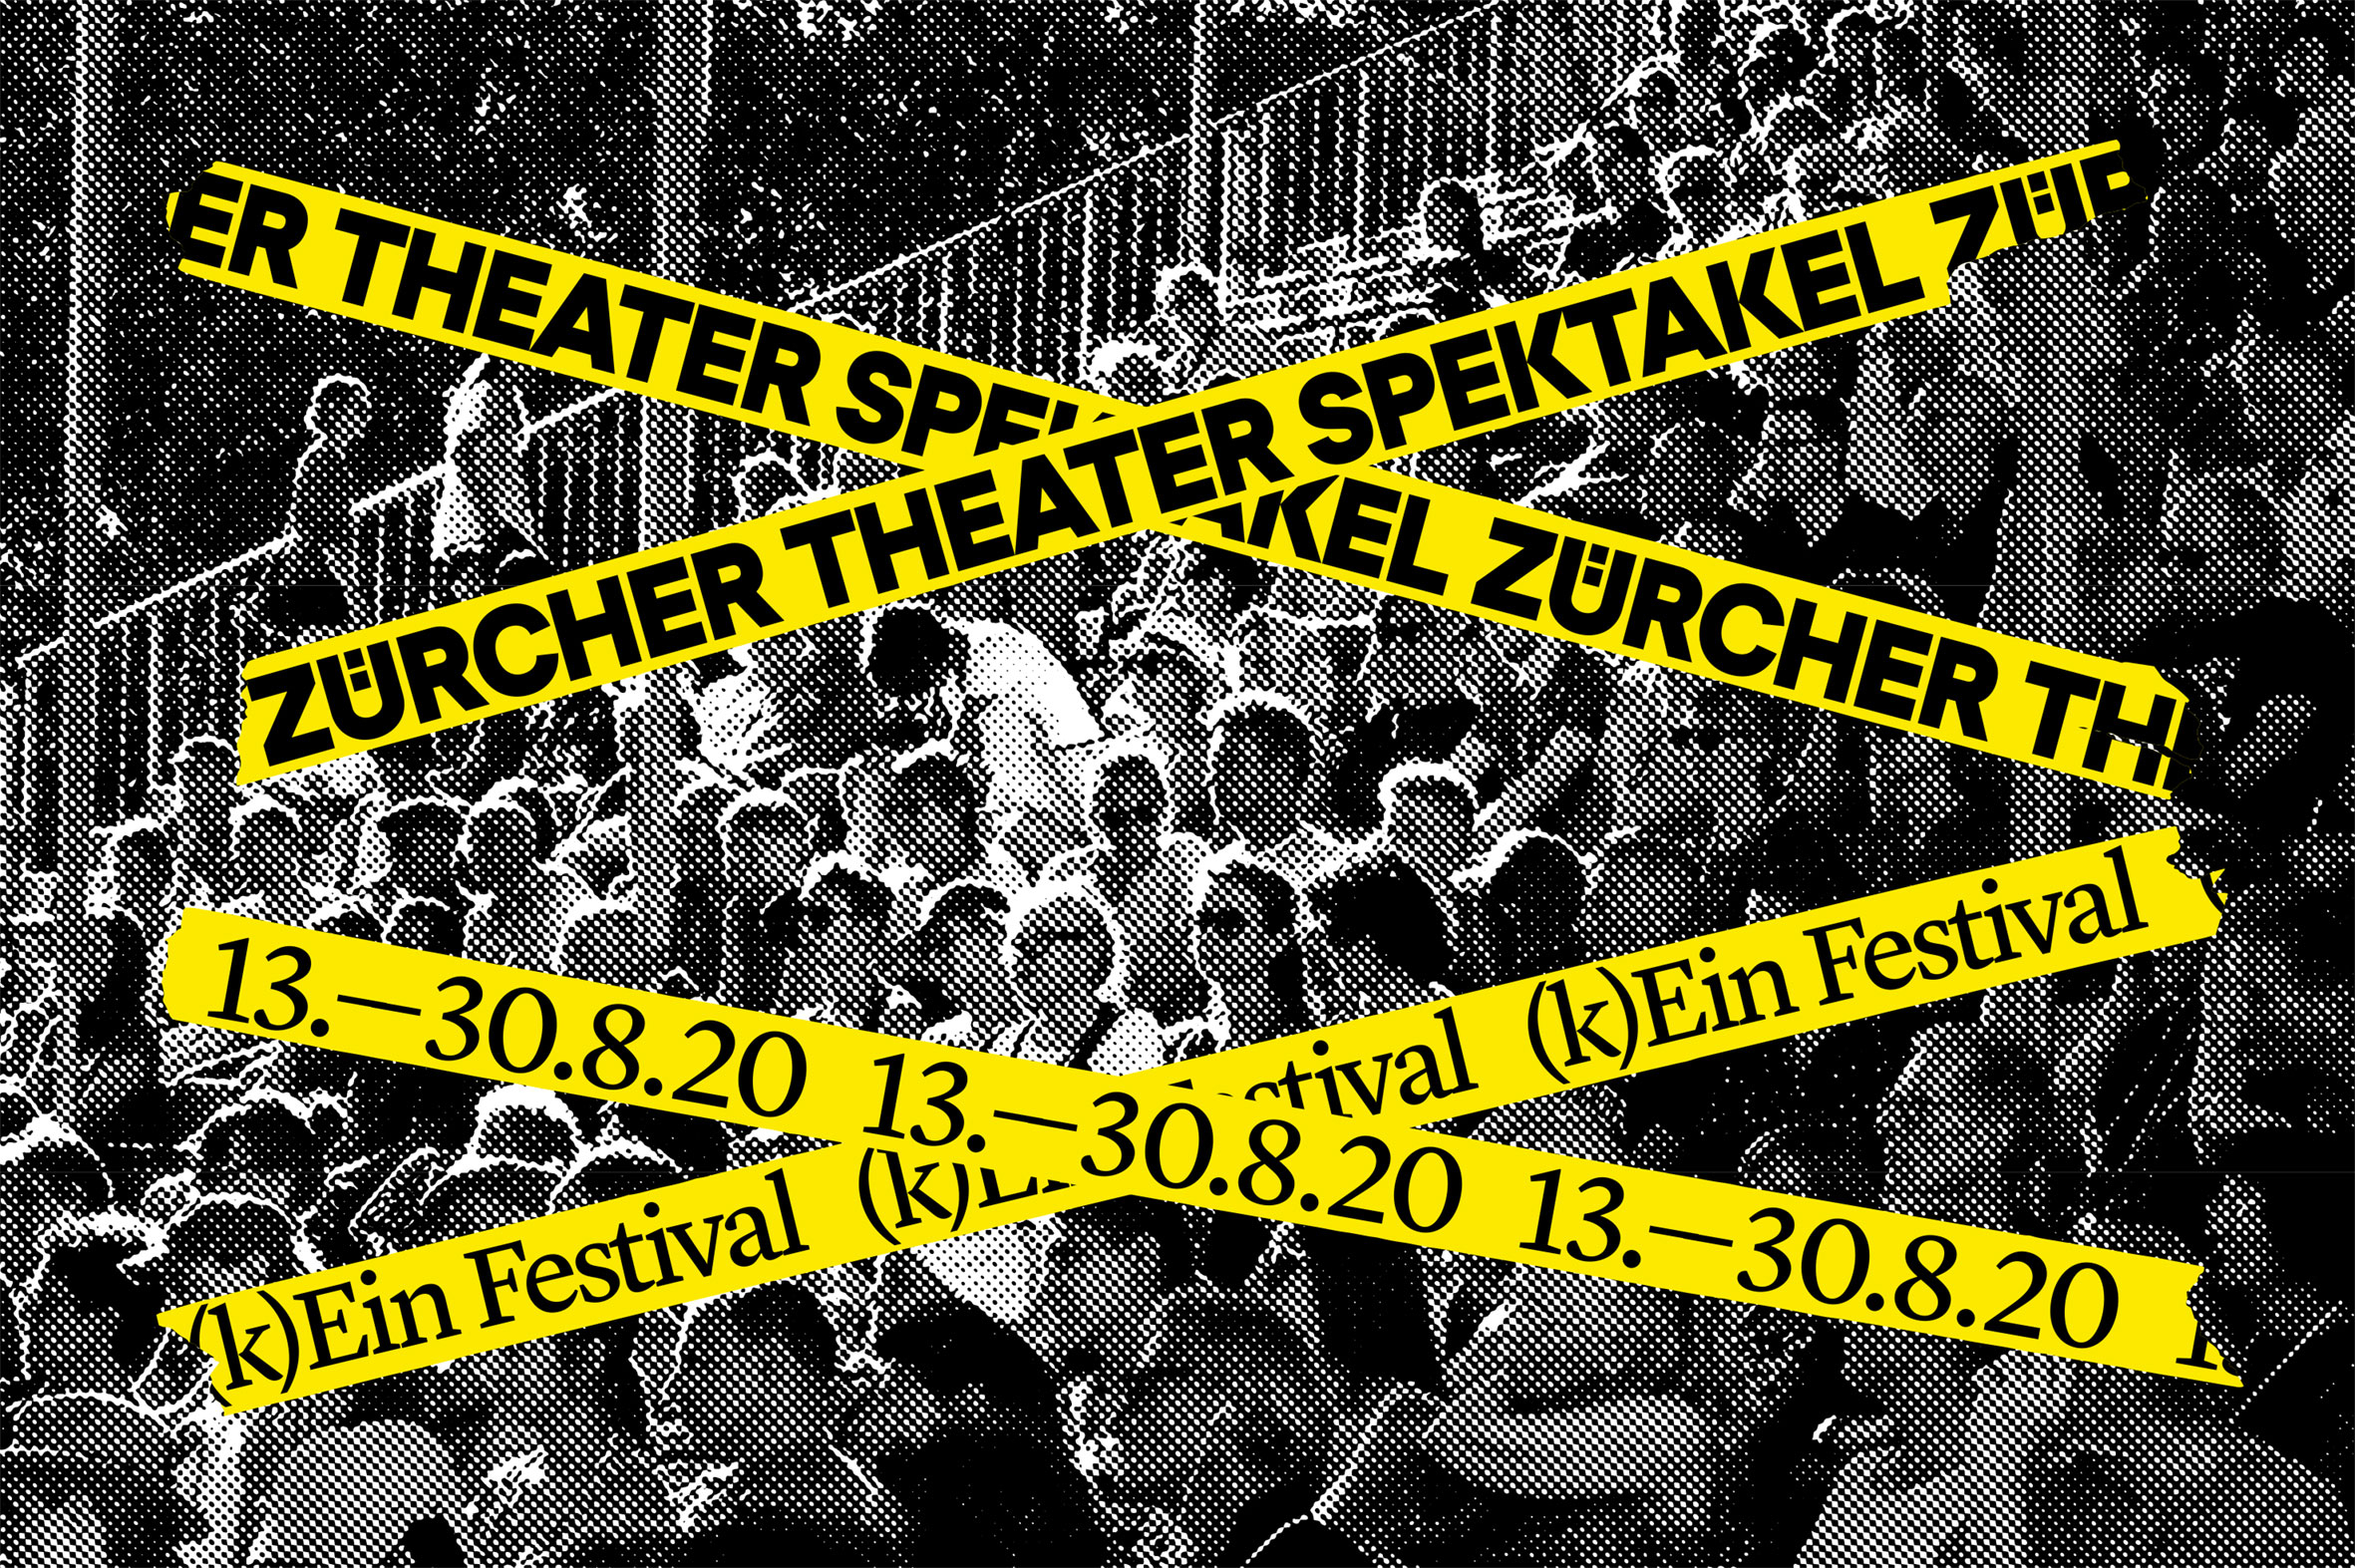 Zürcher Theater Spektakel 2020